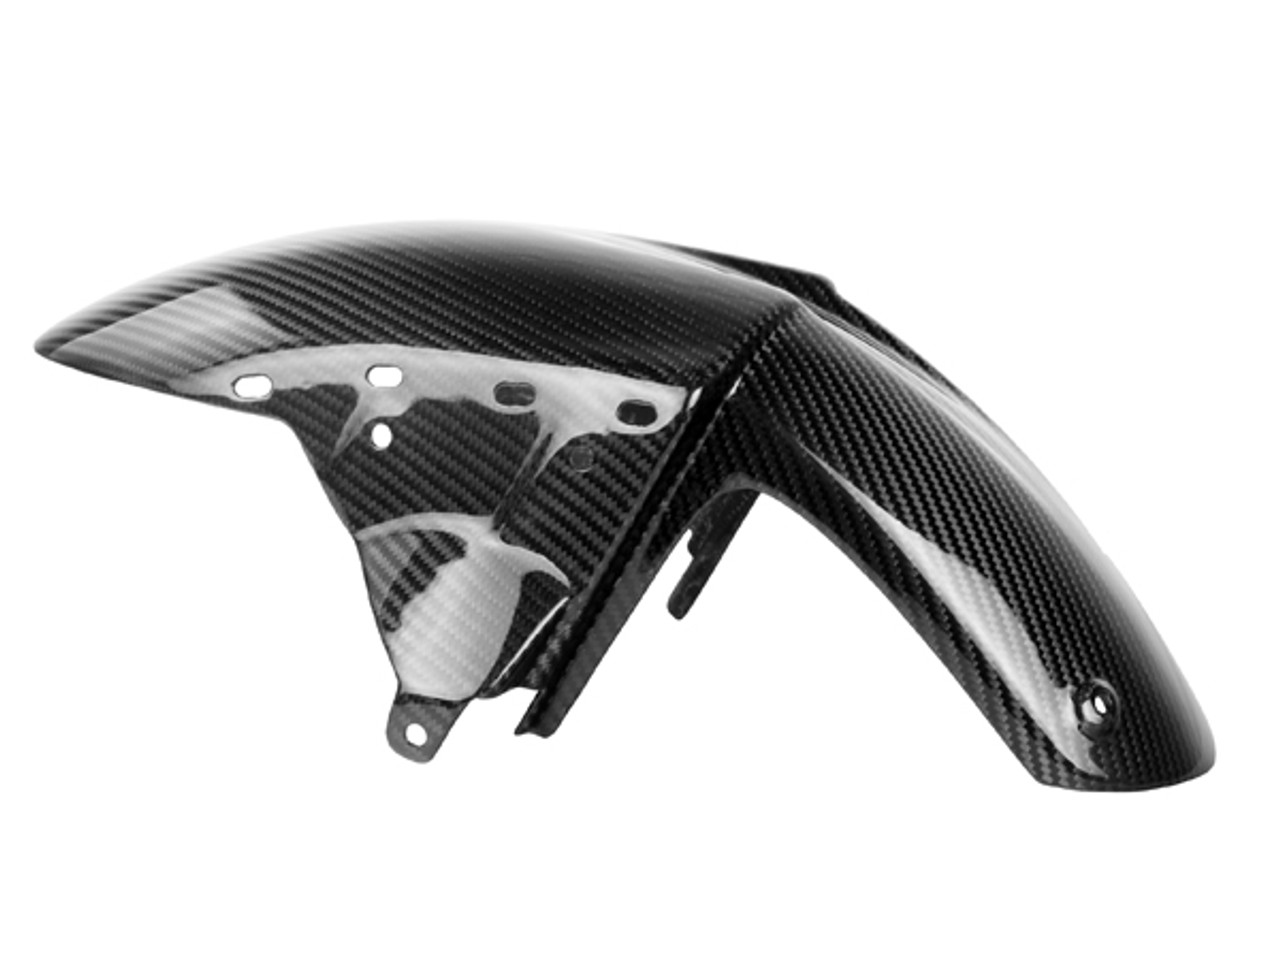 Front Fender in Glossy Twill Weave Carbon Fiber for Kawasaki ZX6R,636 03-04, Z750 04-06, Z1000 03-06